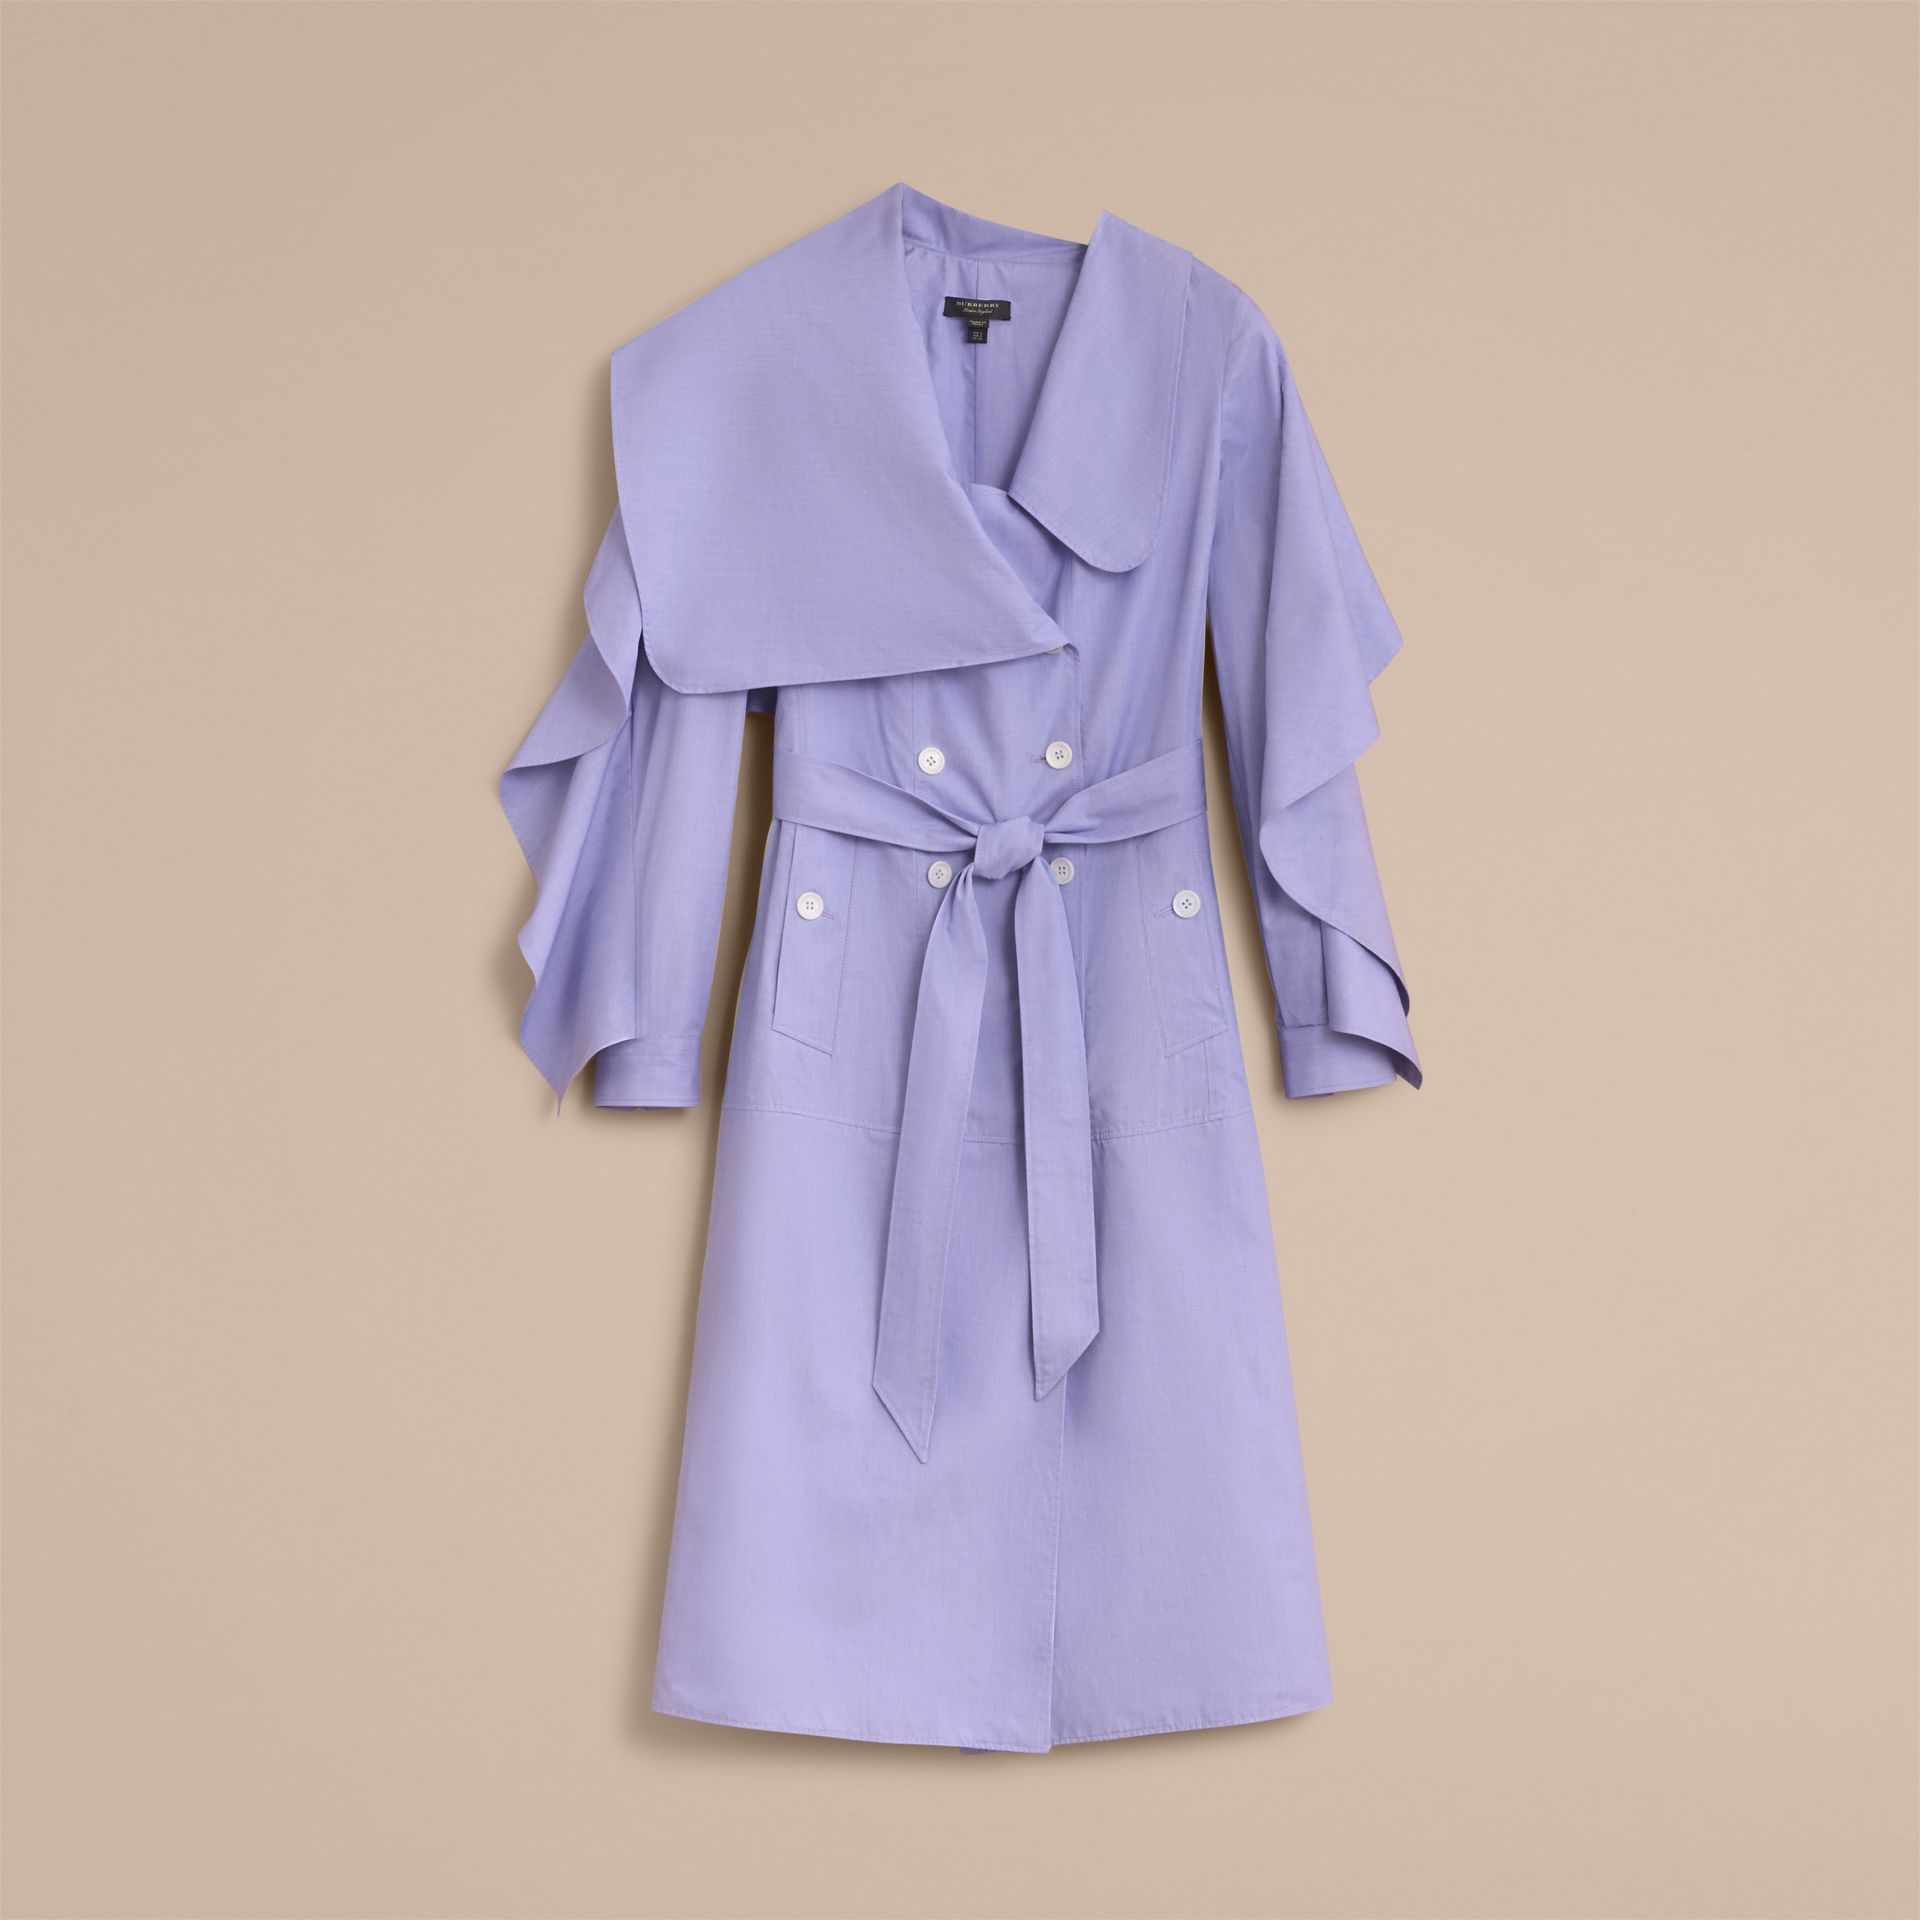 Cotton Chambray Sculptural Wrap Dress - Women | Burberry Australia - gallery image 4